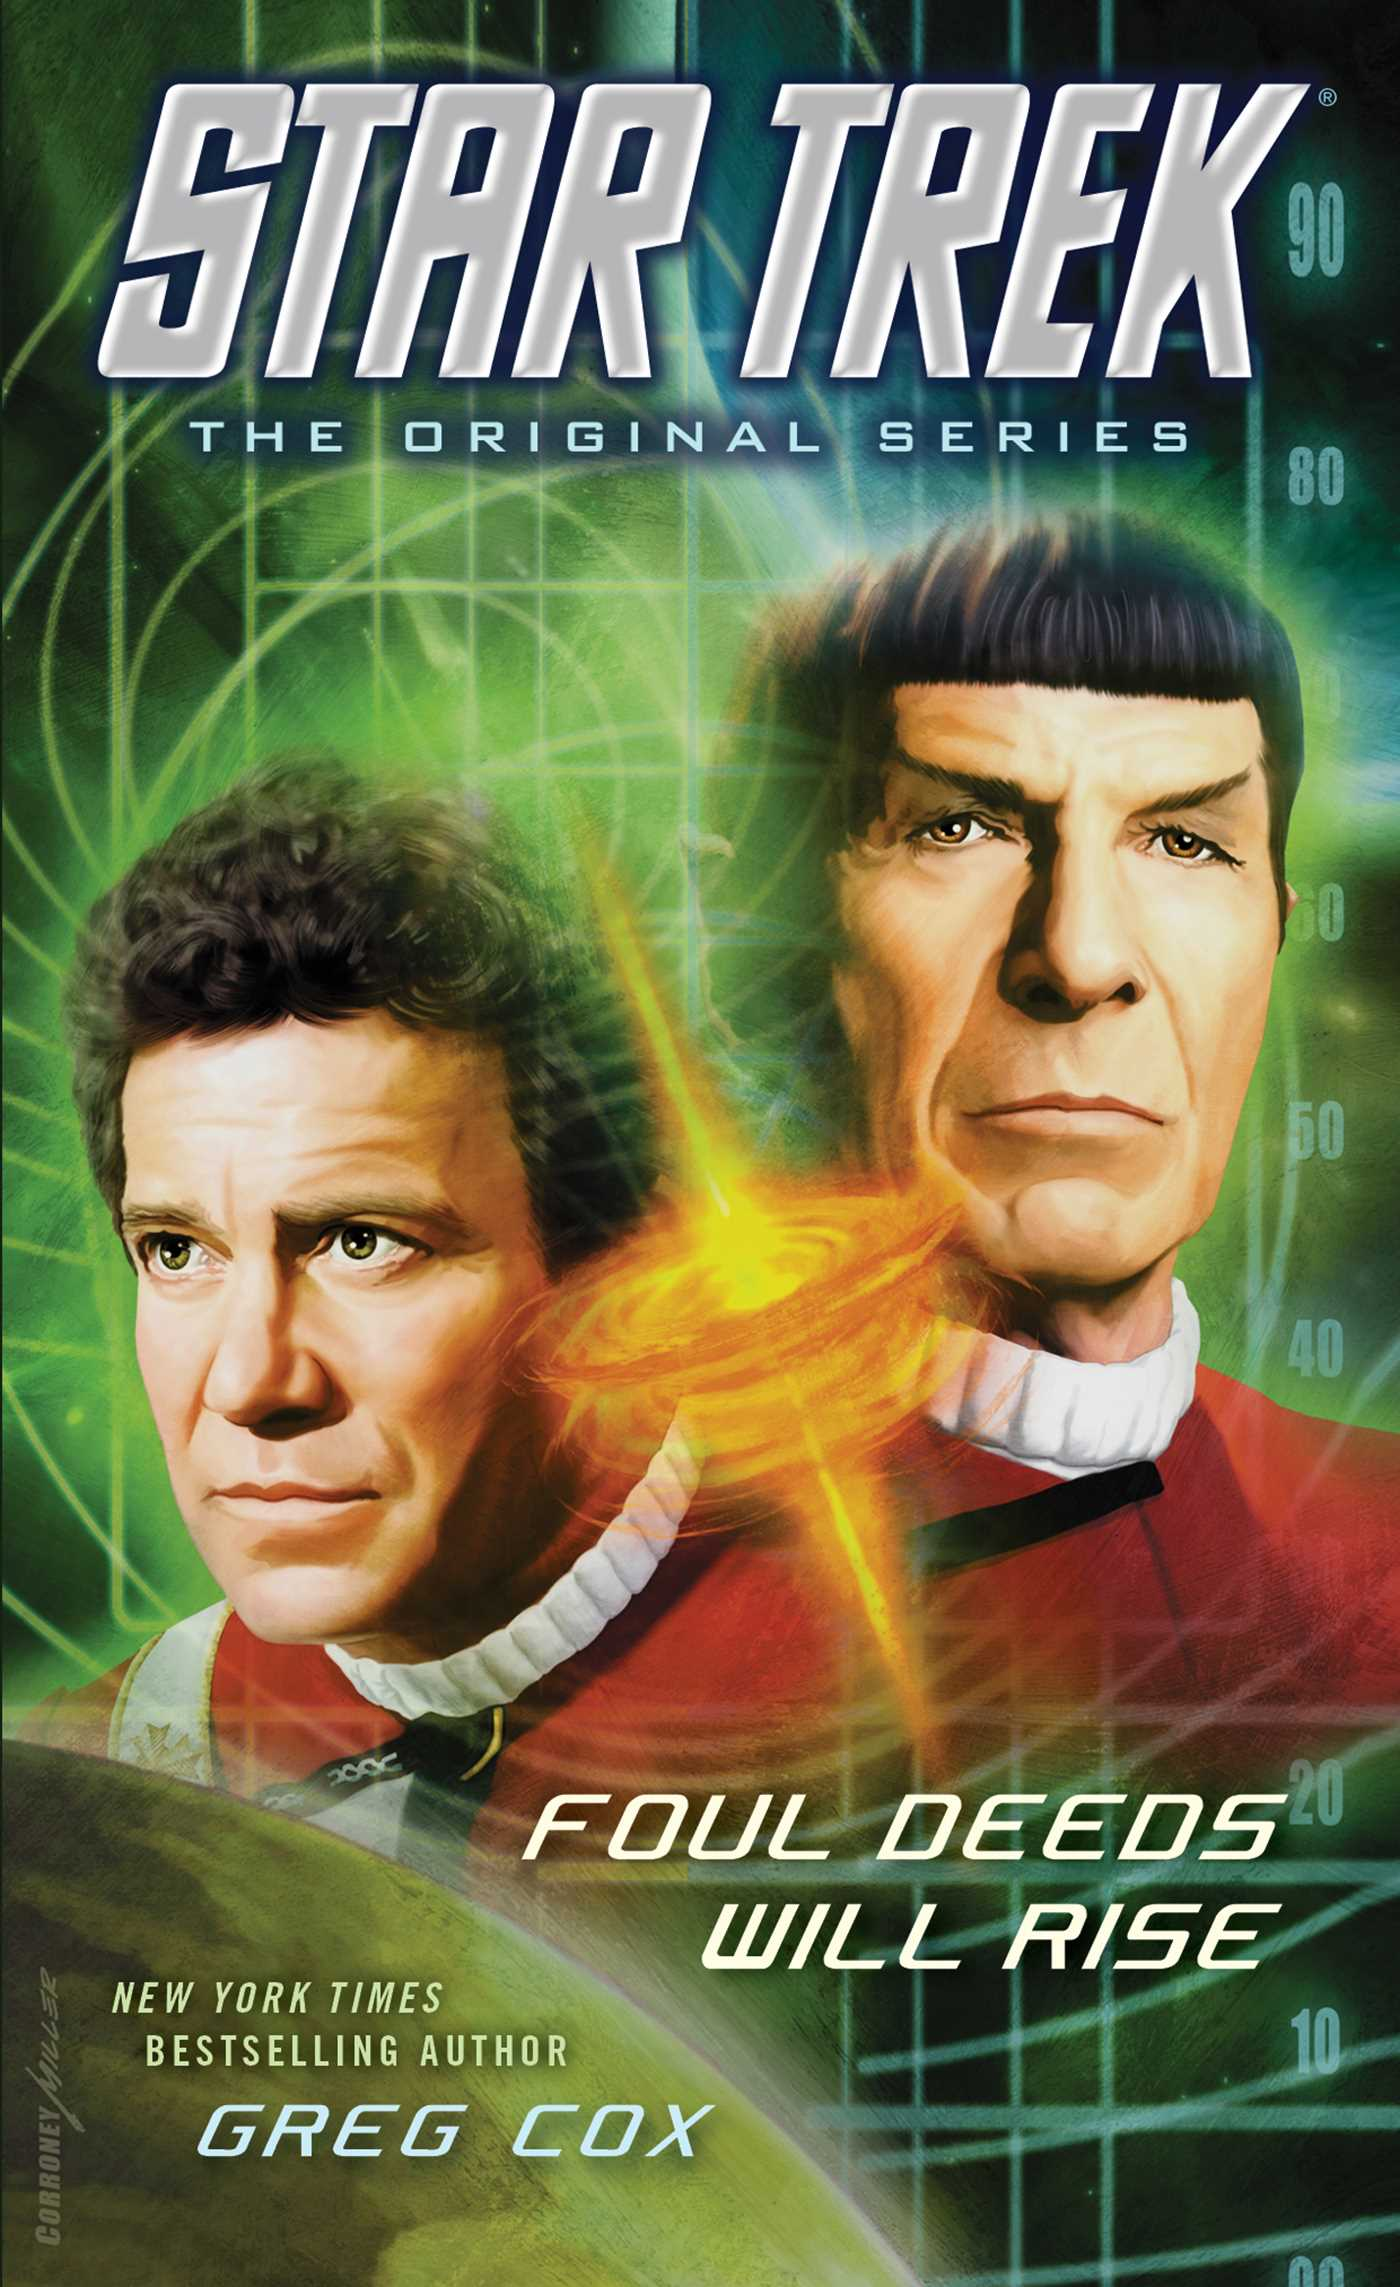 Star-trek-the-original-series-foul-deeds-will-9781476783246_hr